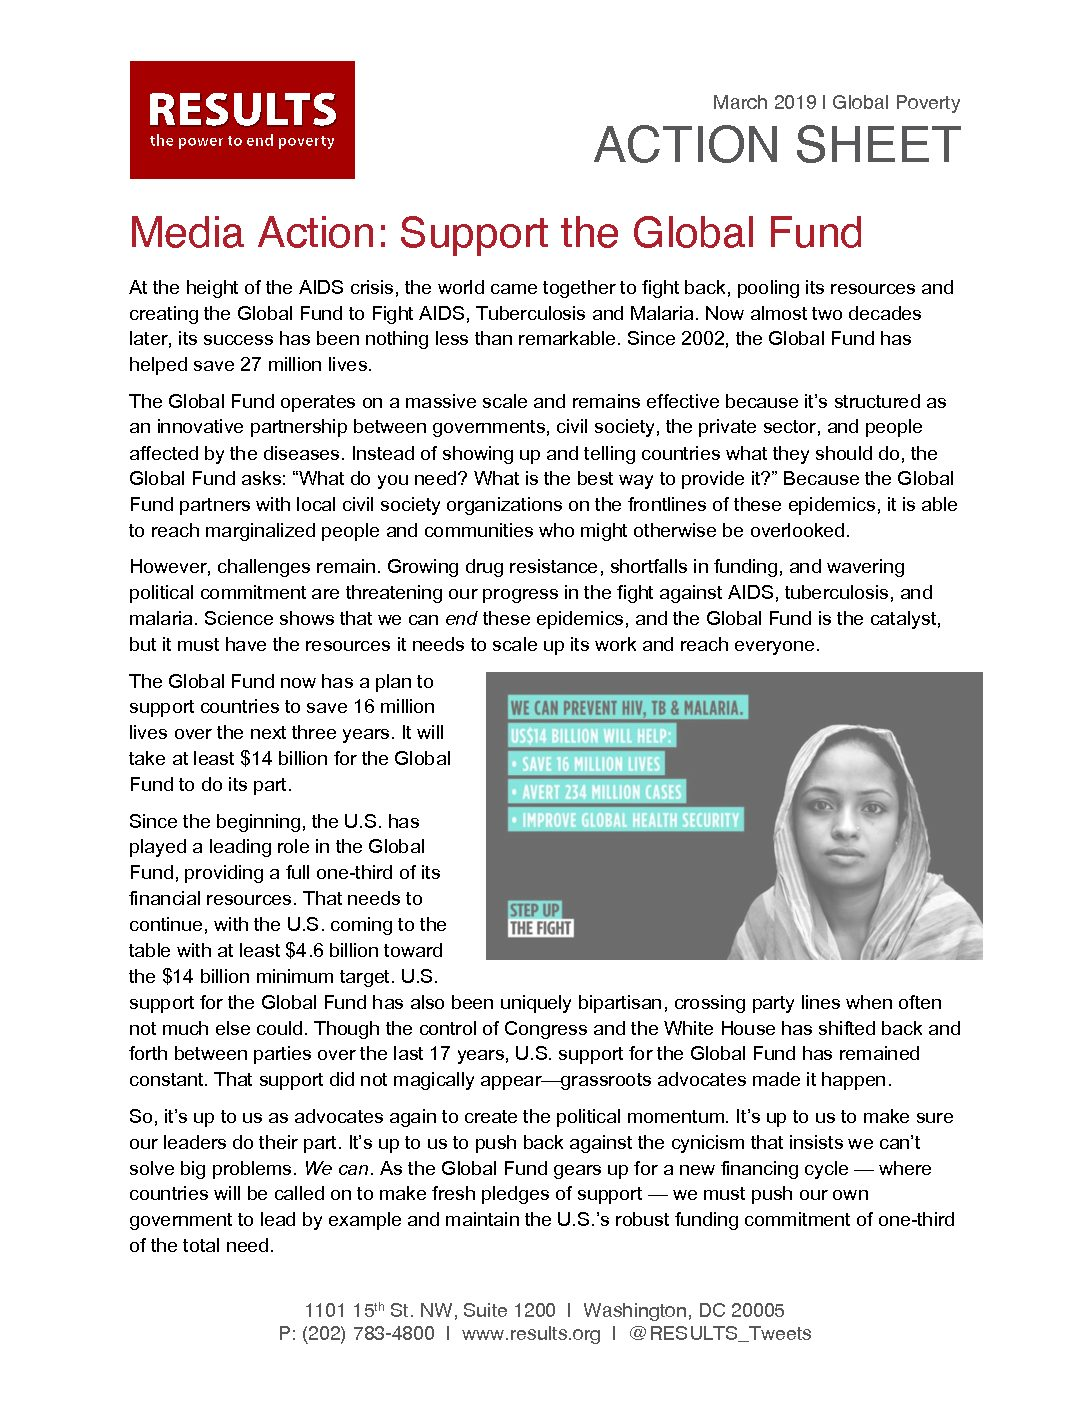 March 2019 Global Action - Global Fund LTE